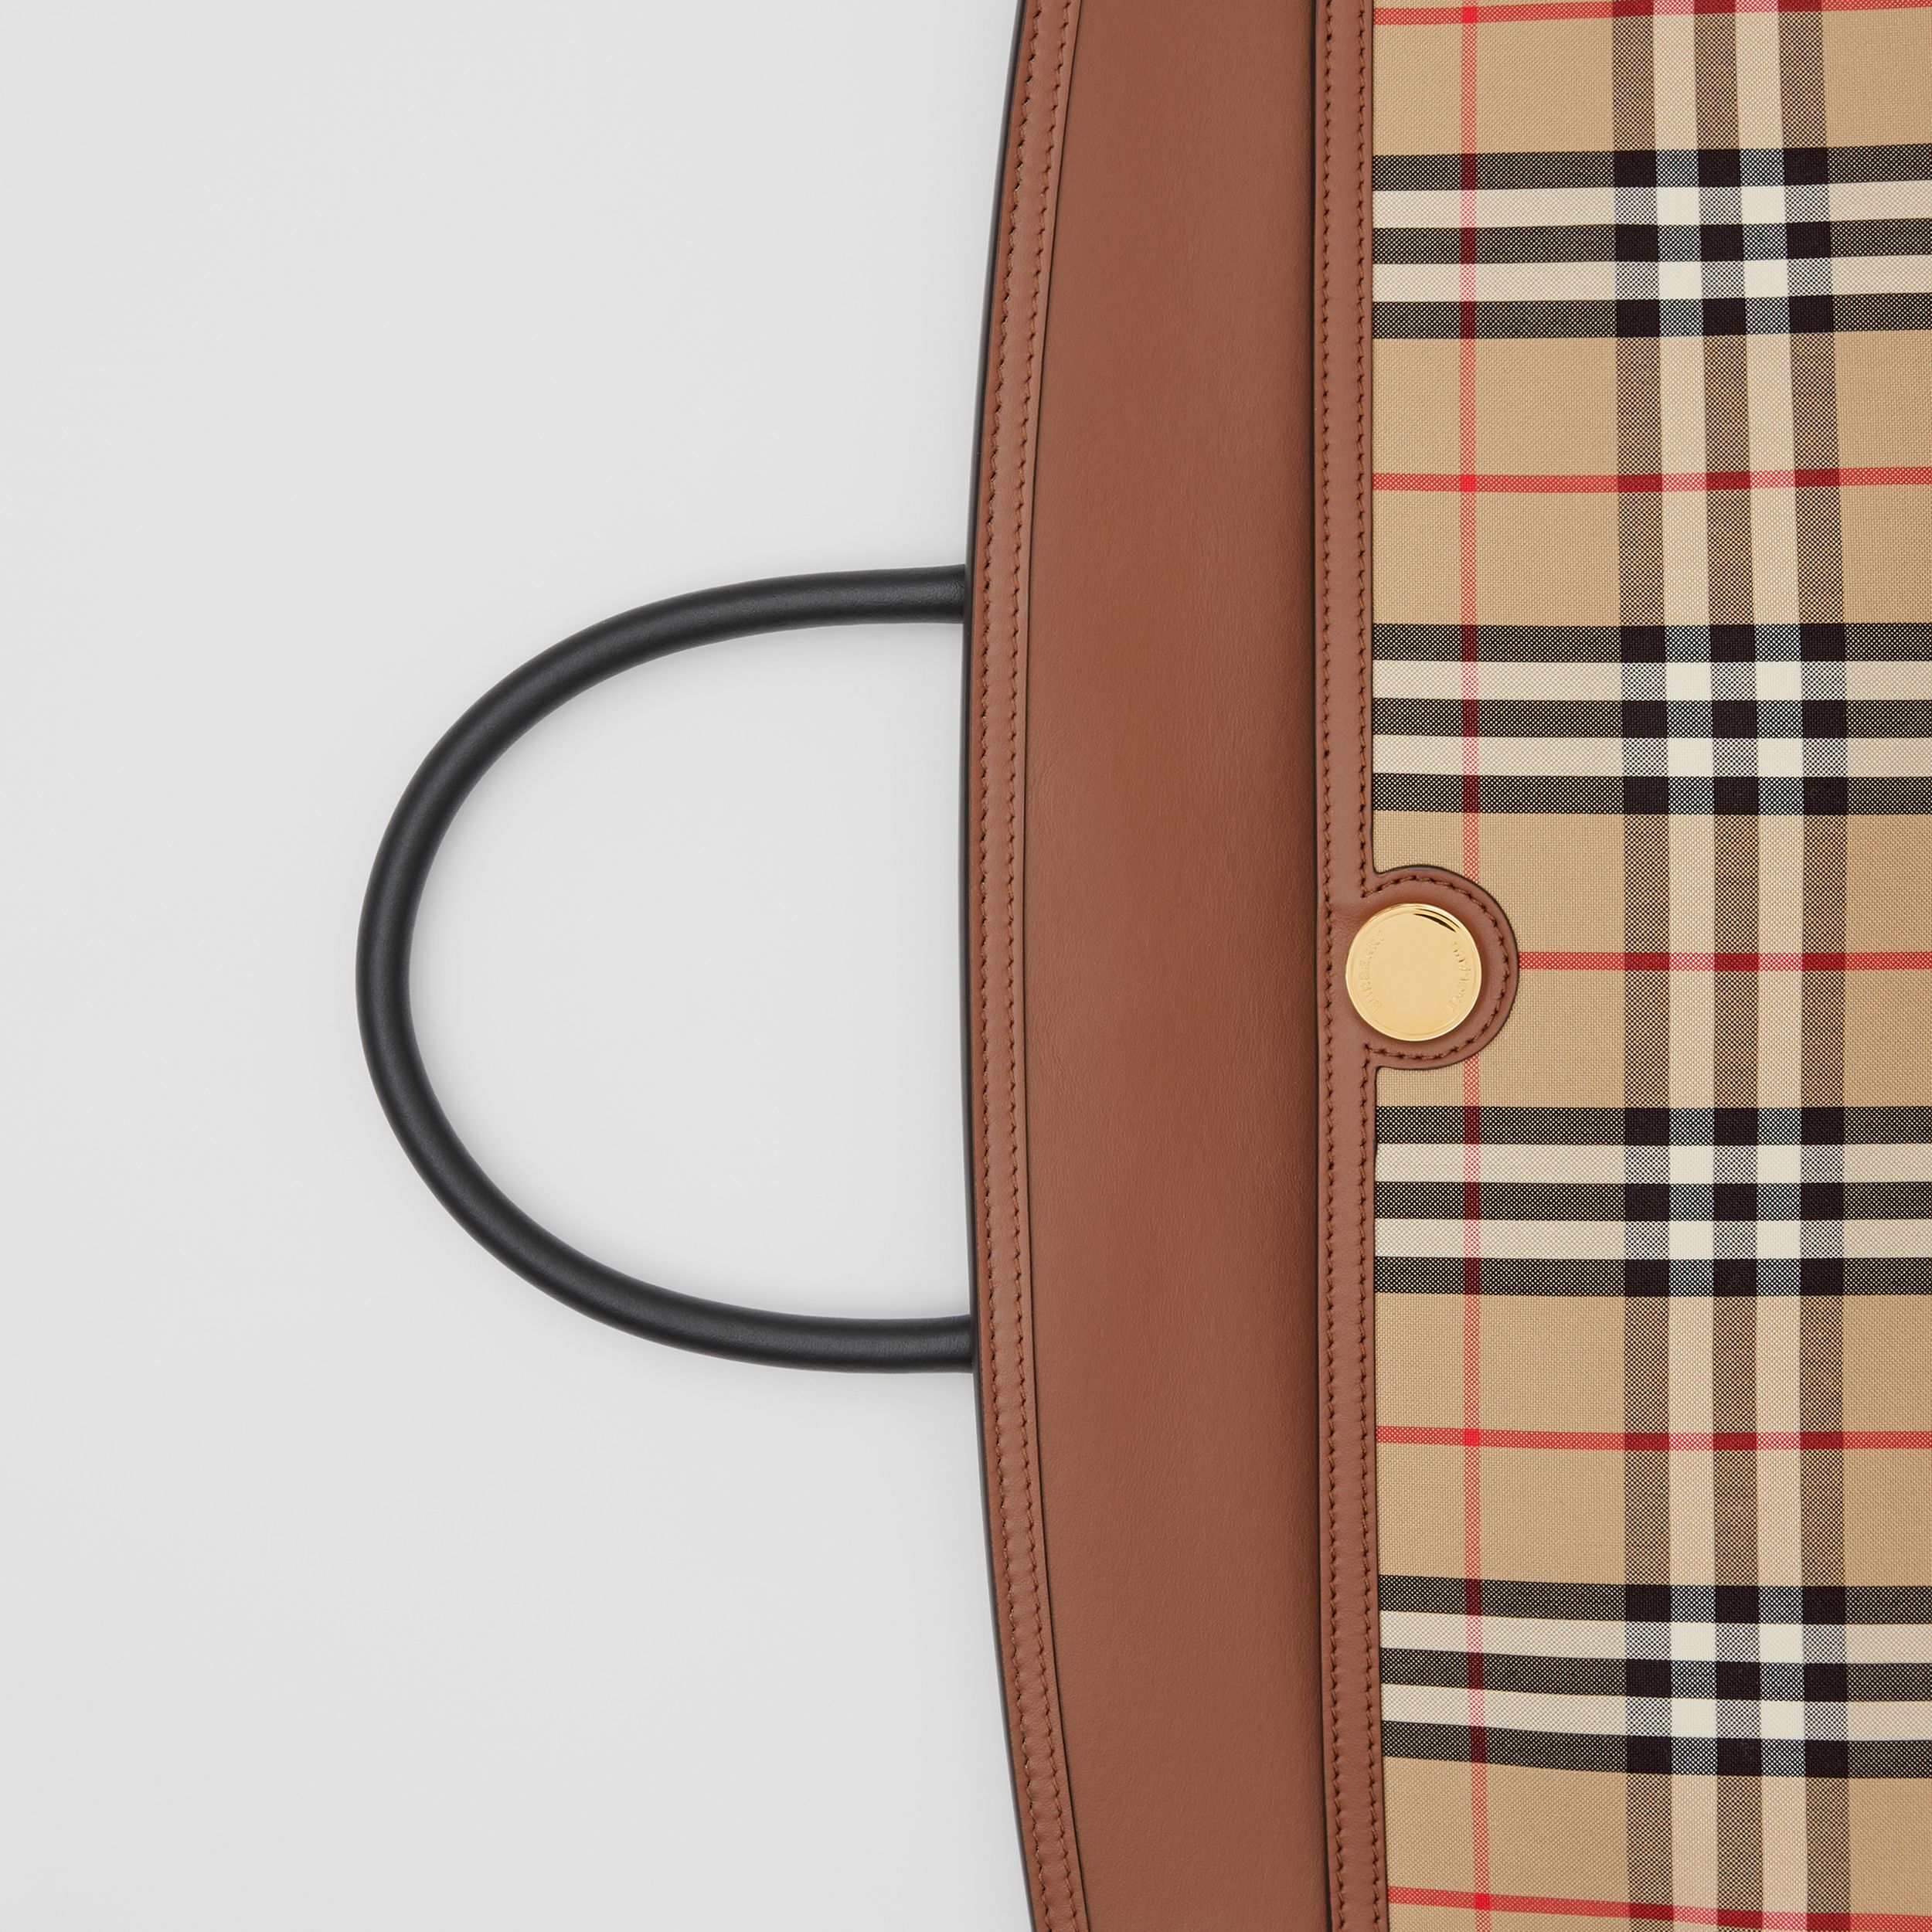 Borsa Society con motivo Vintage check e finiture in pelle (Beige Archivio/marroncino) - Donna | Burberry - 2